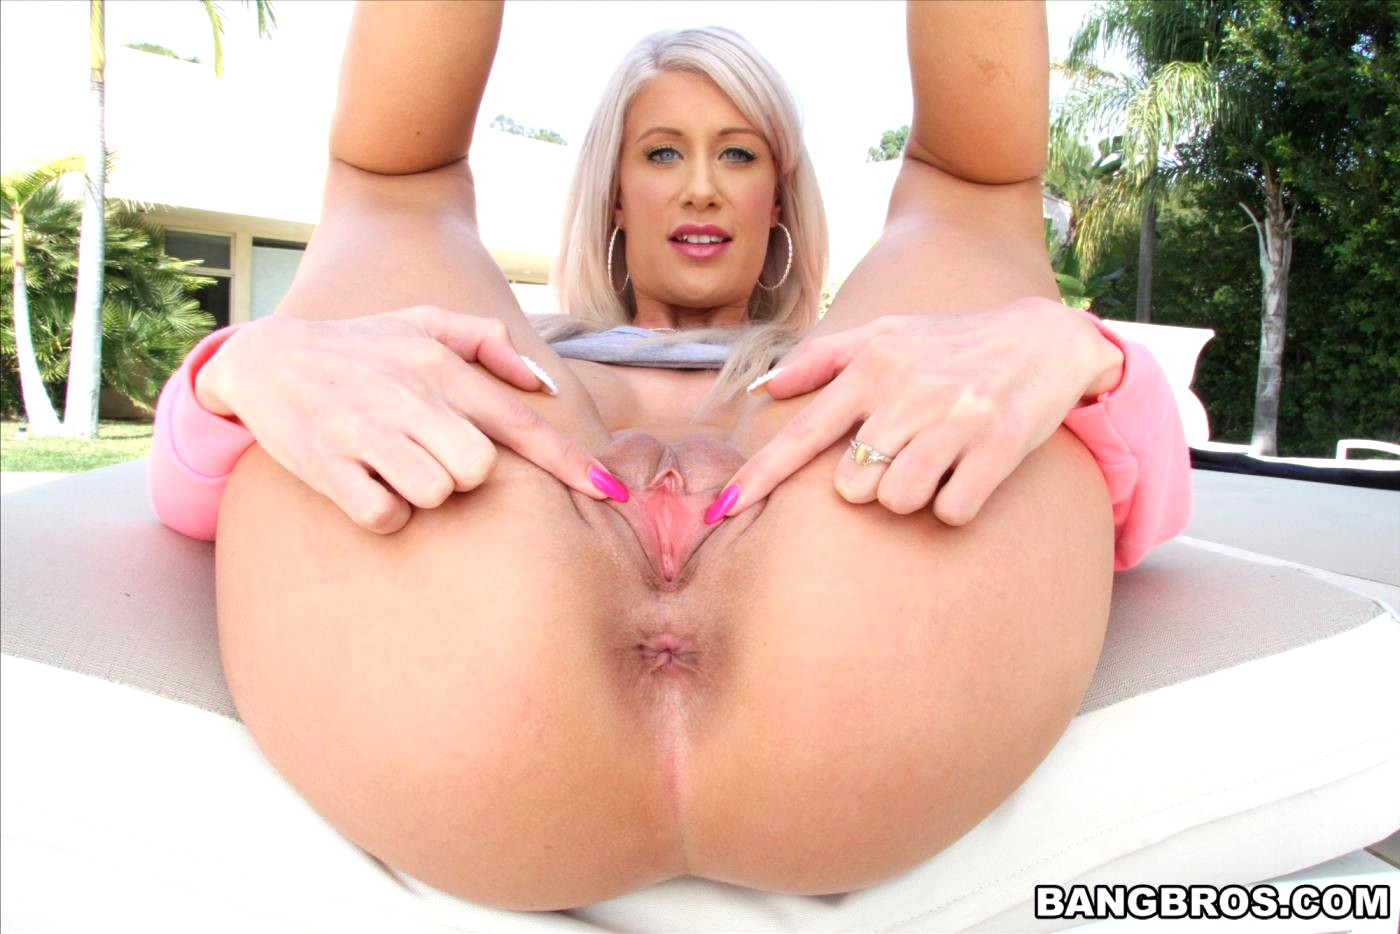 Riley jenner is a talented school girl brazzers